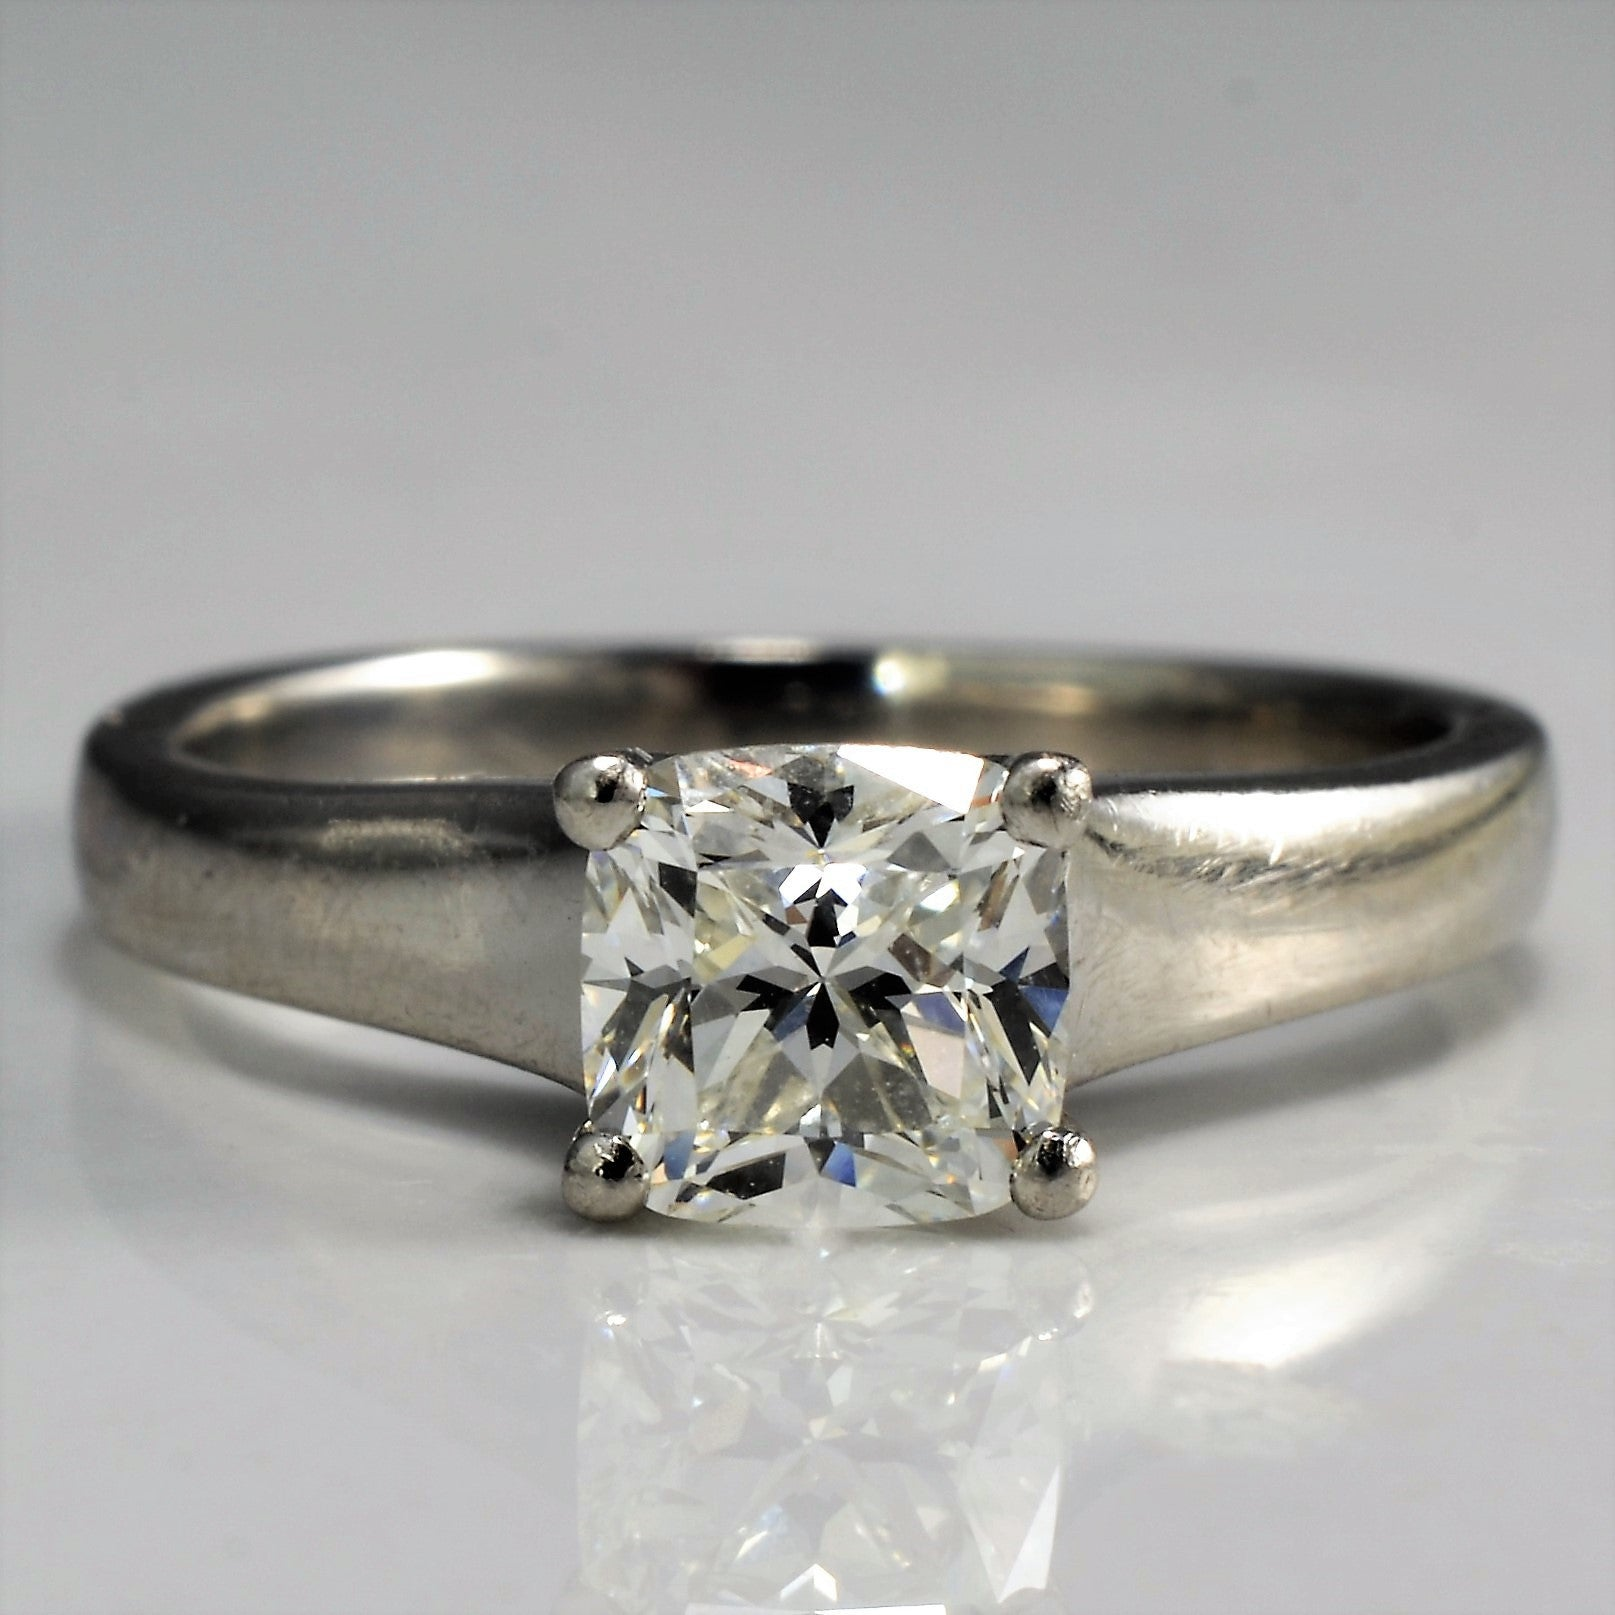 diamond products ltd canadian jewellers ring daimond burns rings engagement